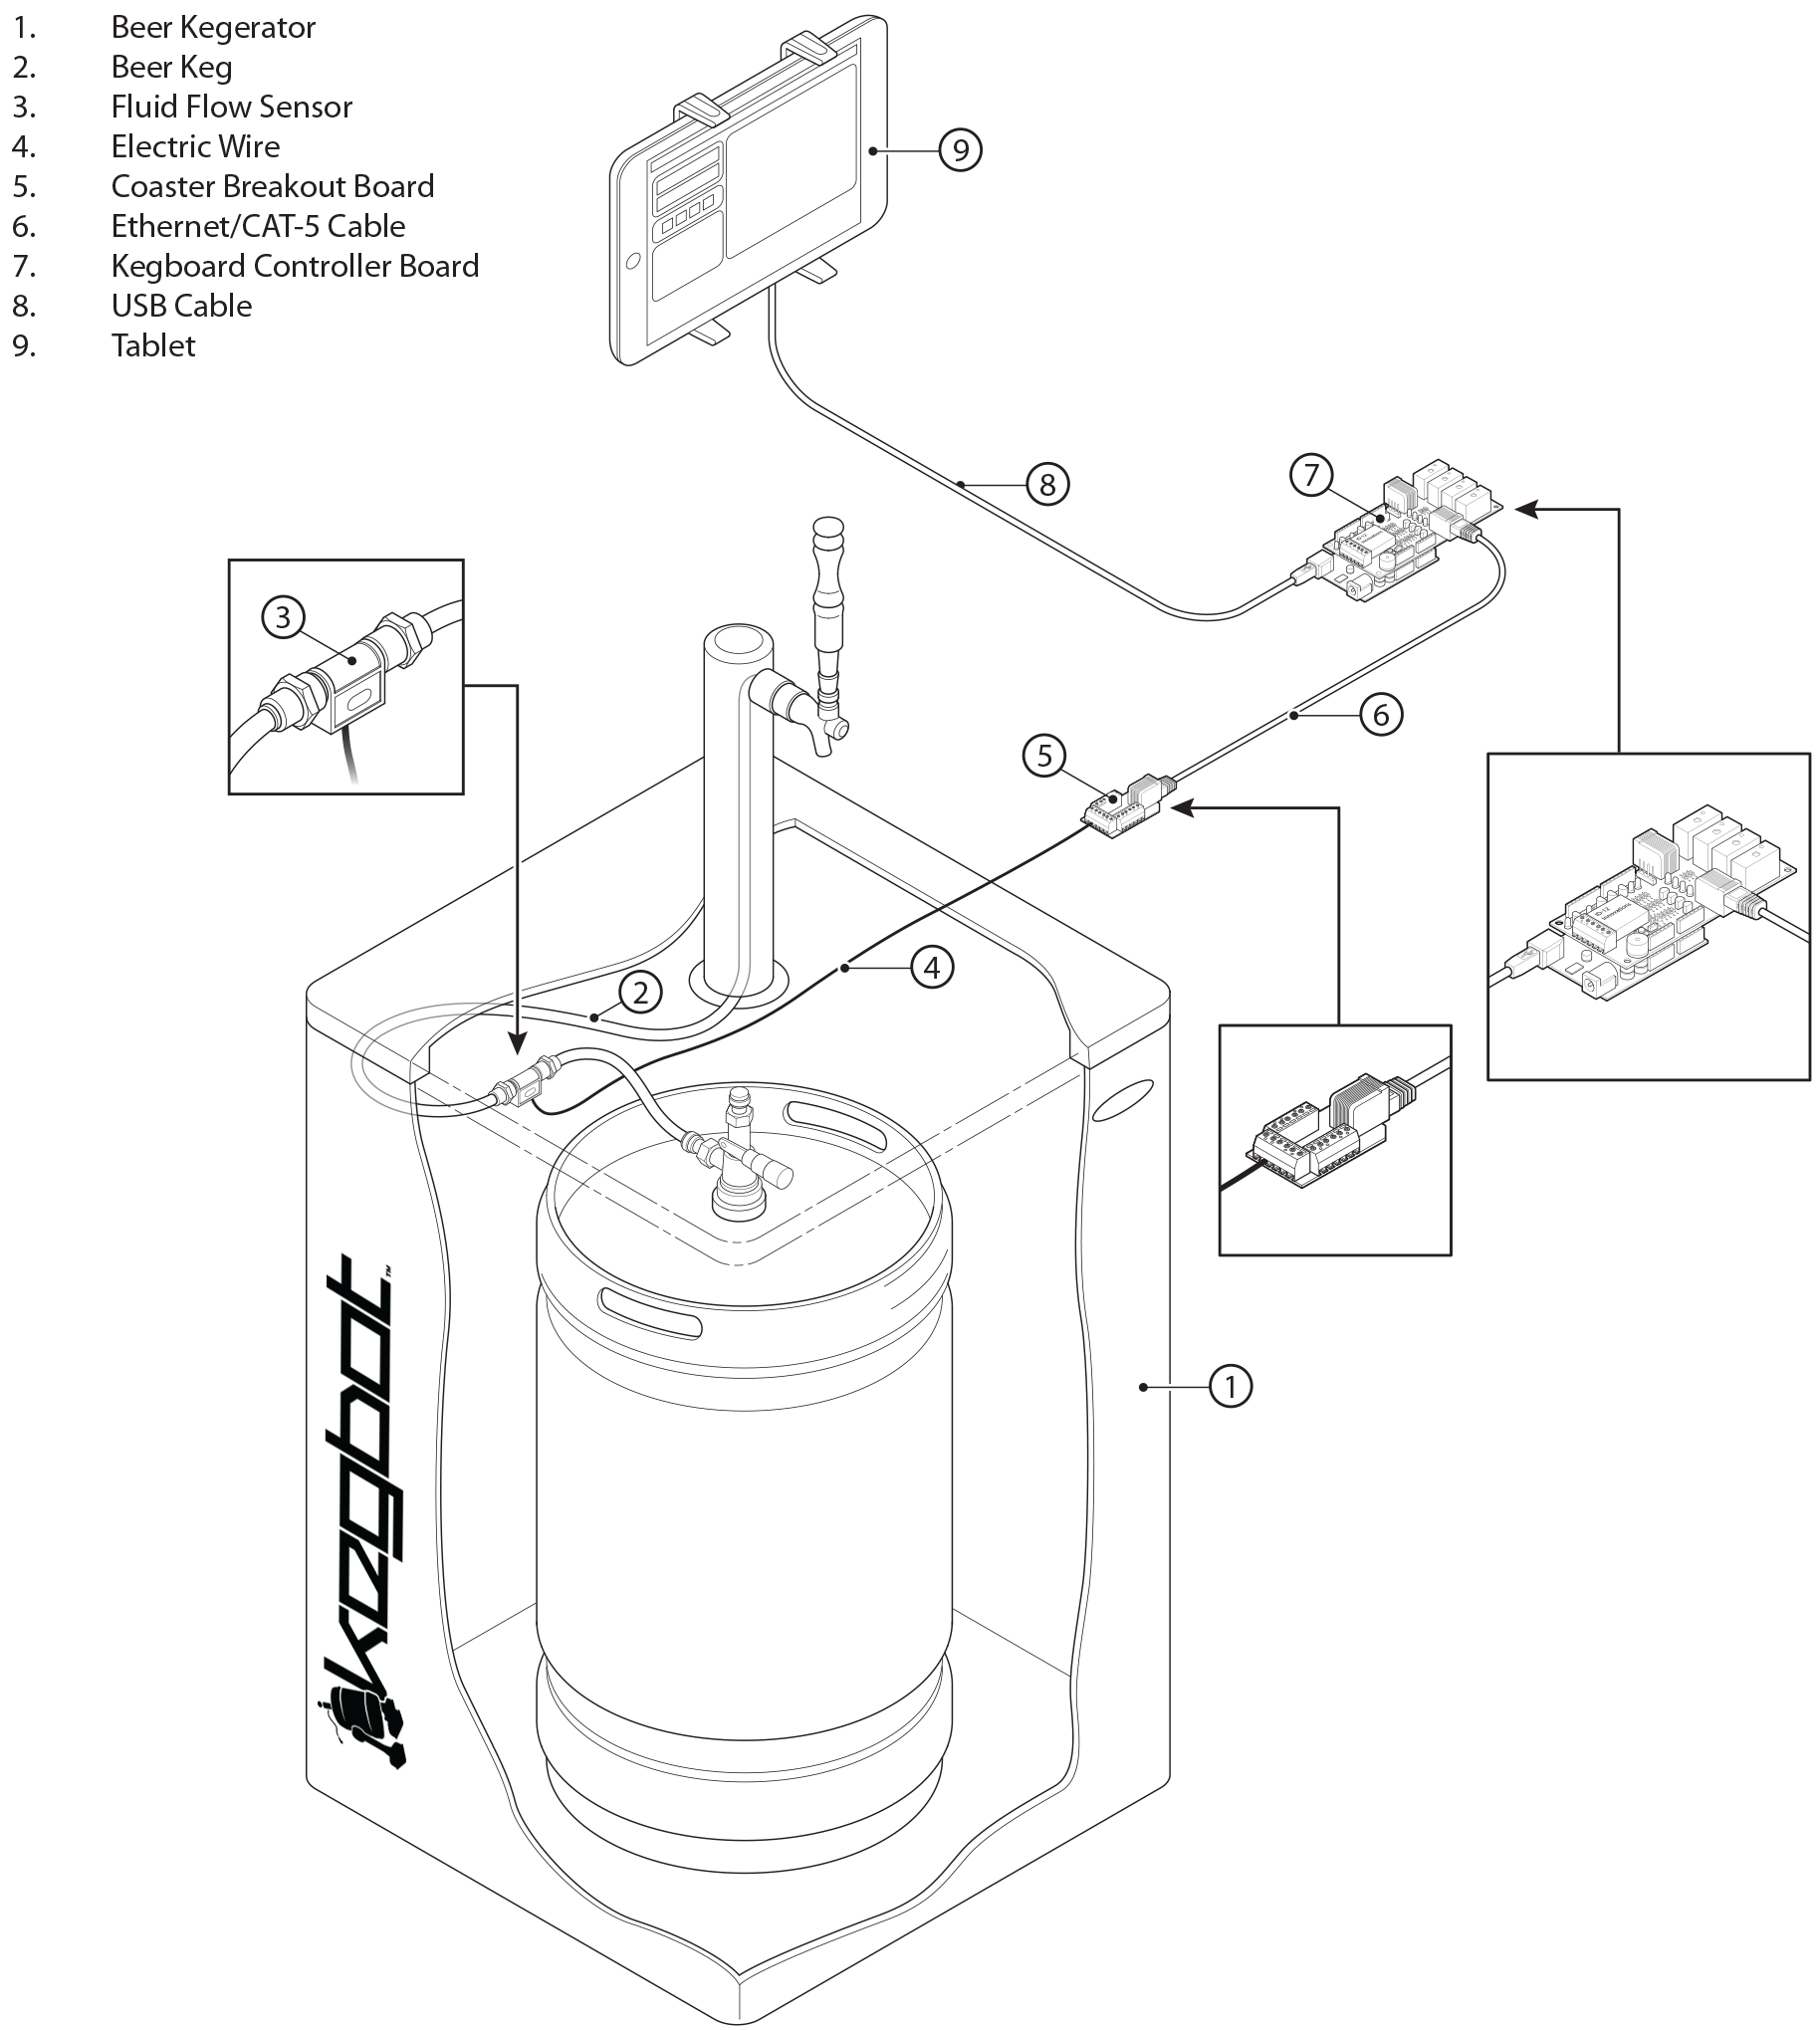 Finishing Your Build Wiring Diagram For Keg Beer With Any Luck Assembled System Will Look Something Like The Above